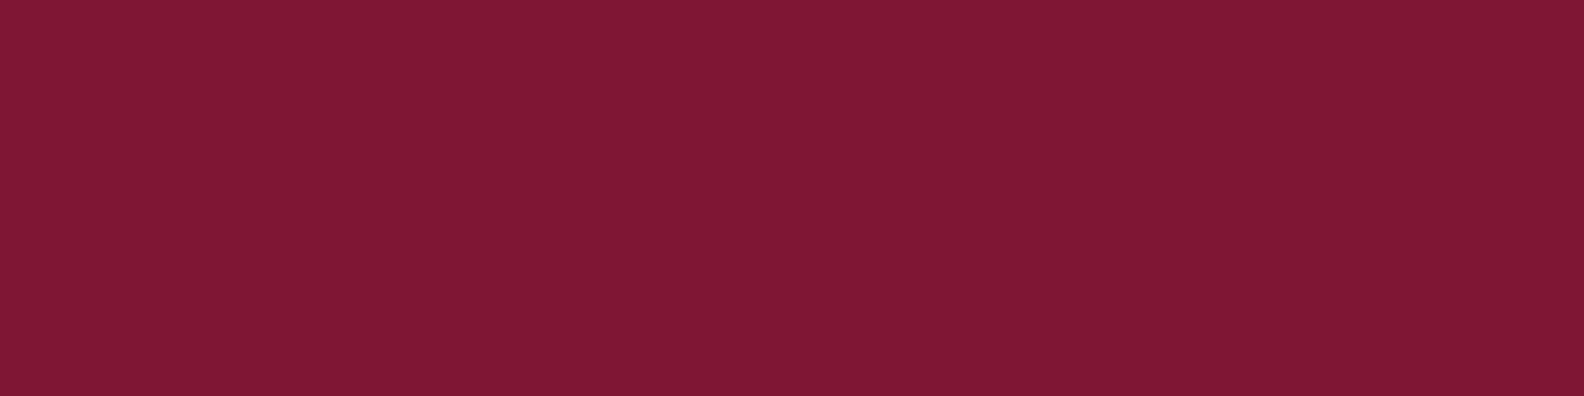 1584x396 Claret Solid Color Background